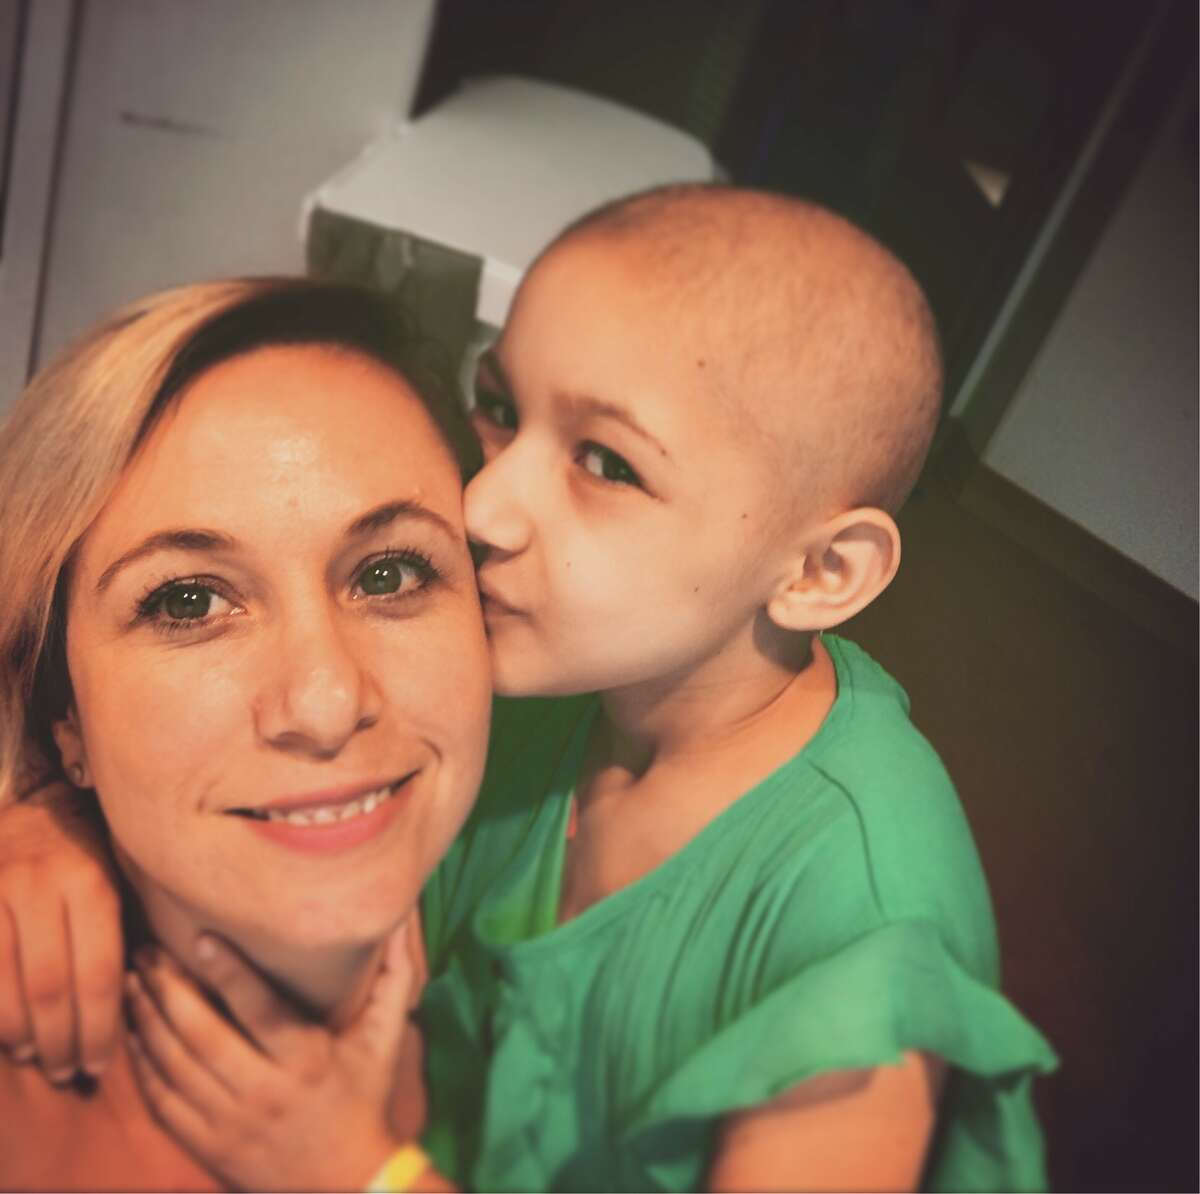 Susana Obregon, 7, and her mother - also named Susana - share a tender moment. The younger Susana suffers from Acute Lymphoblastic Leukemia but is receiving treatment atTexas Children's Hospital in Houston.